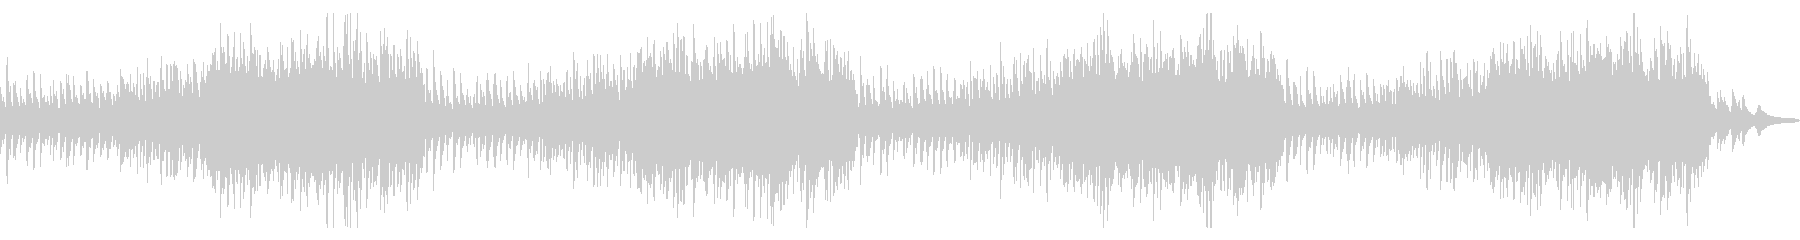 Christmas! Cute and bright orchestra's unreproduced waveform